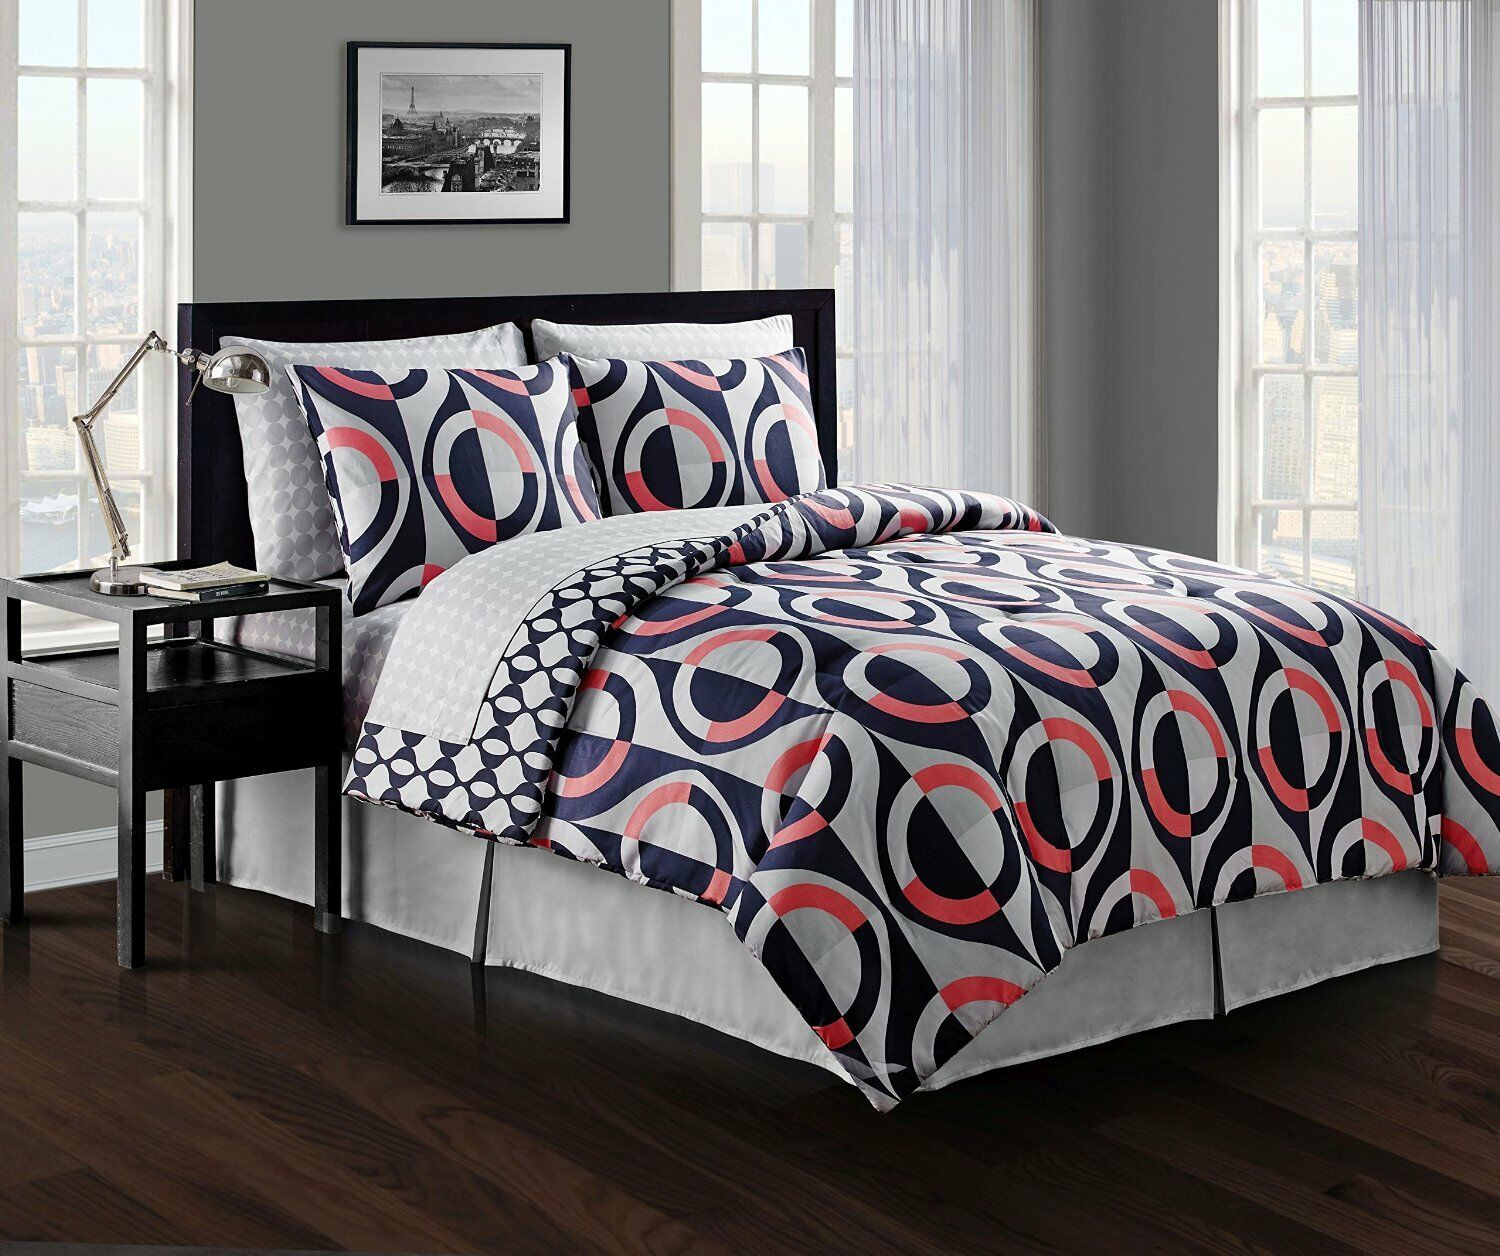 NEW Avondale Manor 8 Piece Grayson Comforter Set, Queen